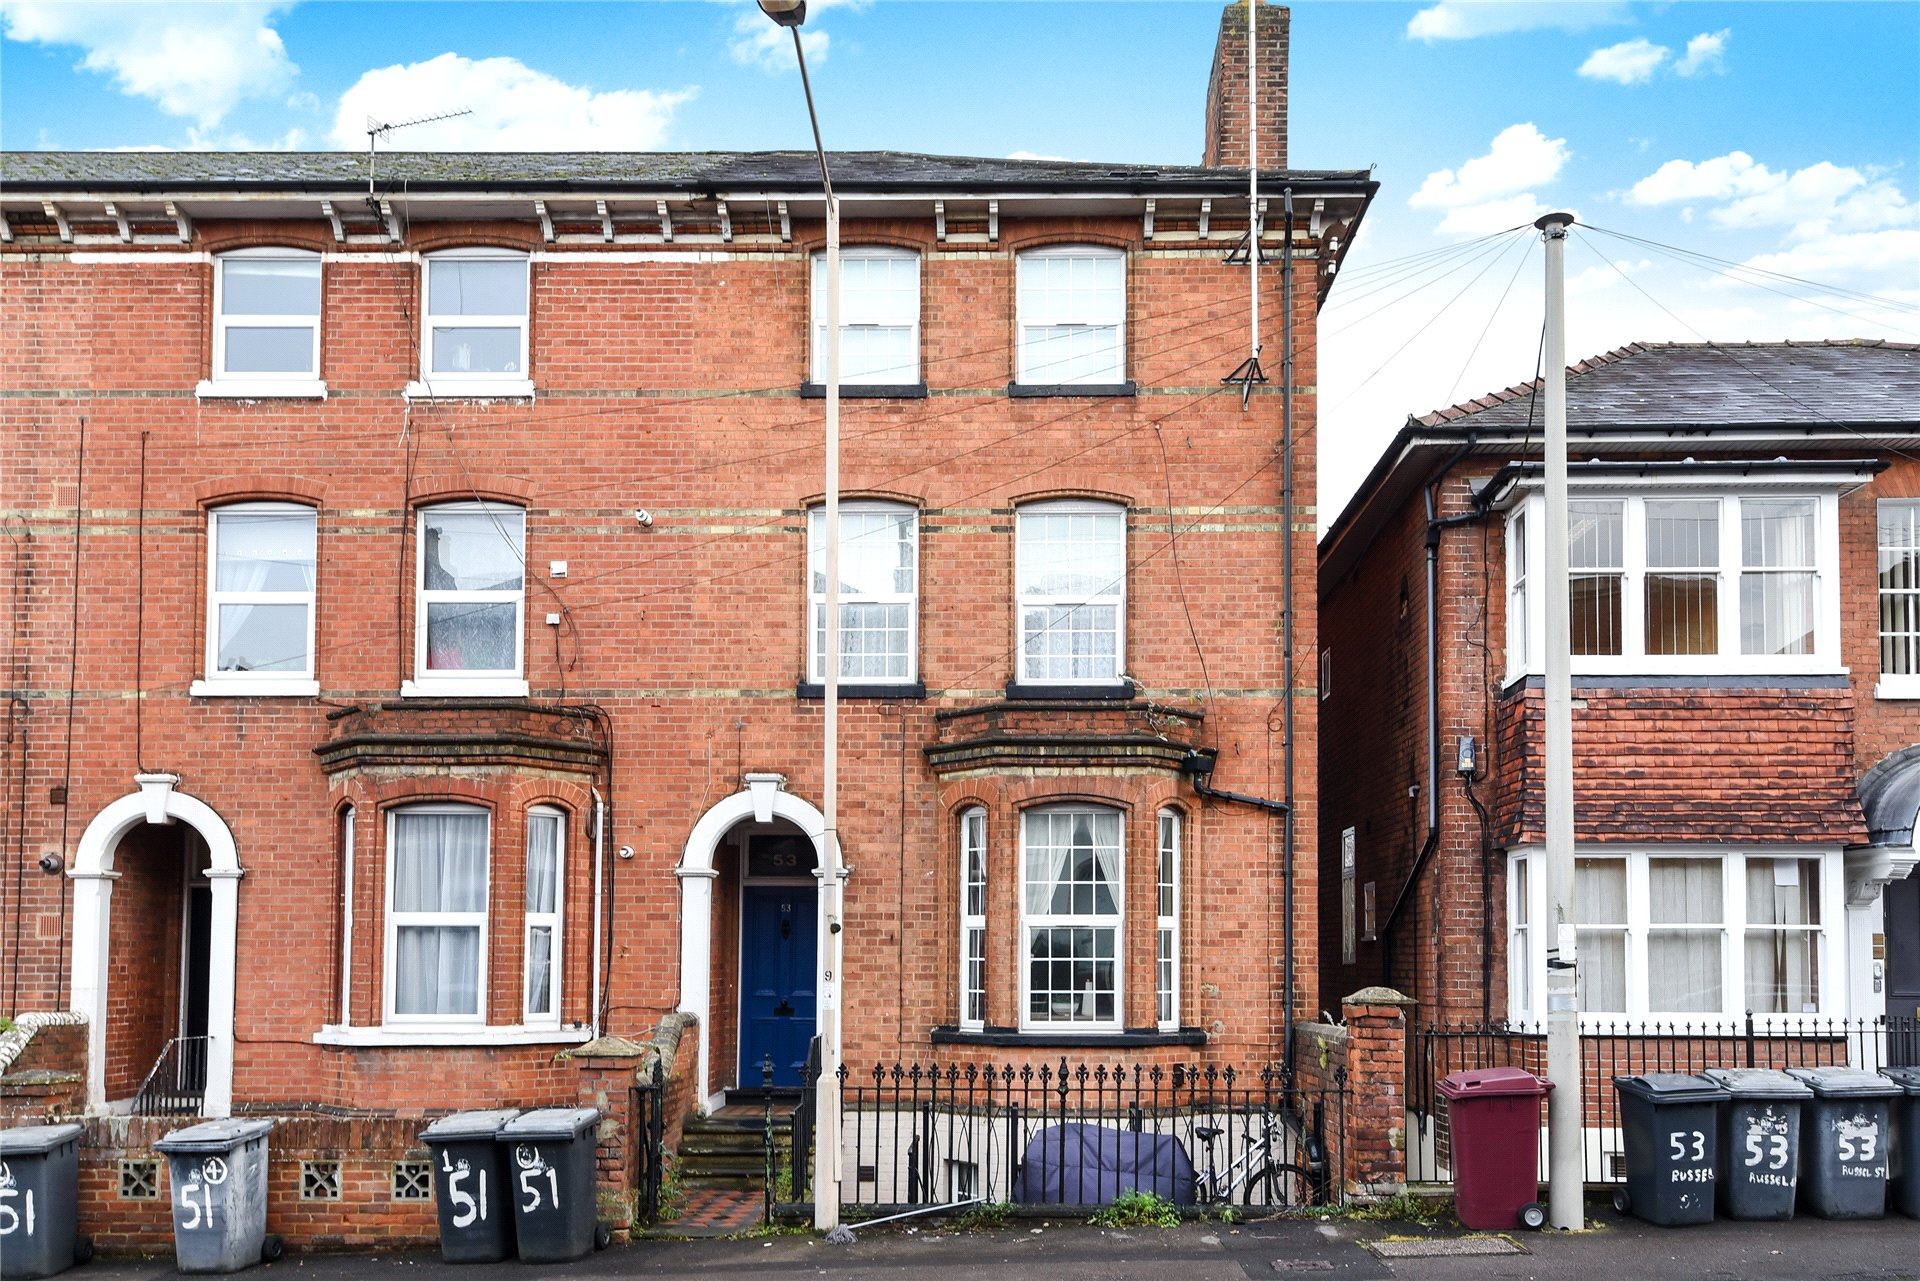 2 Bedrooms Apartment Flat for sale in Russell Street, Reading, Berkshire, RG1